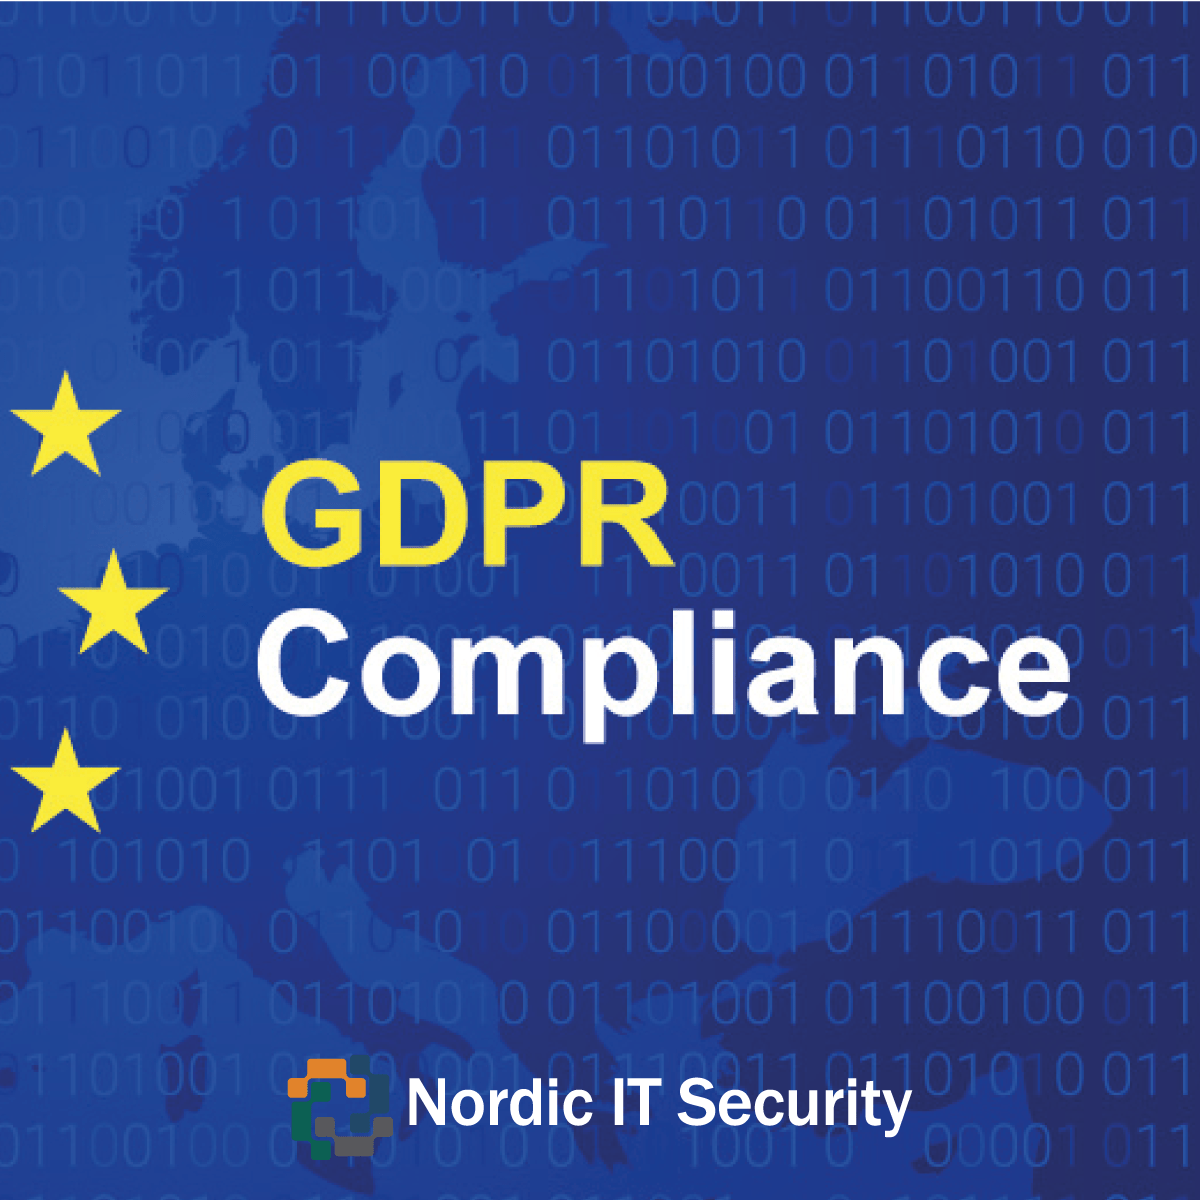 GDPR Compliance Site Leaks Git Data, Passwords - Blog post from Nordic IT Security Forum 2020